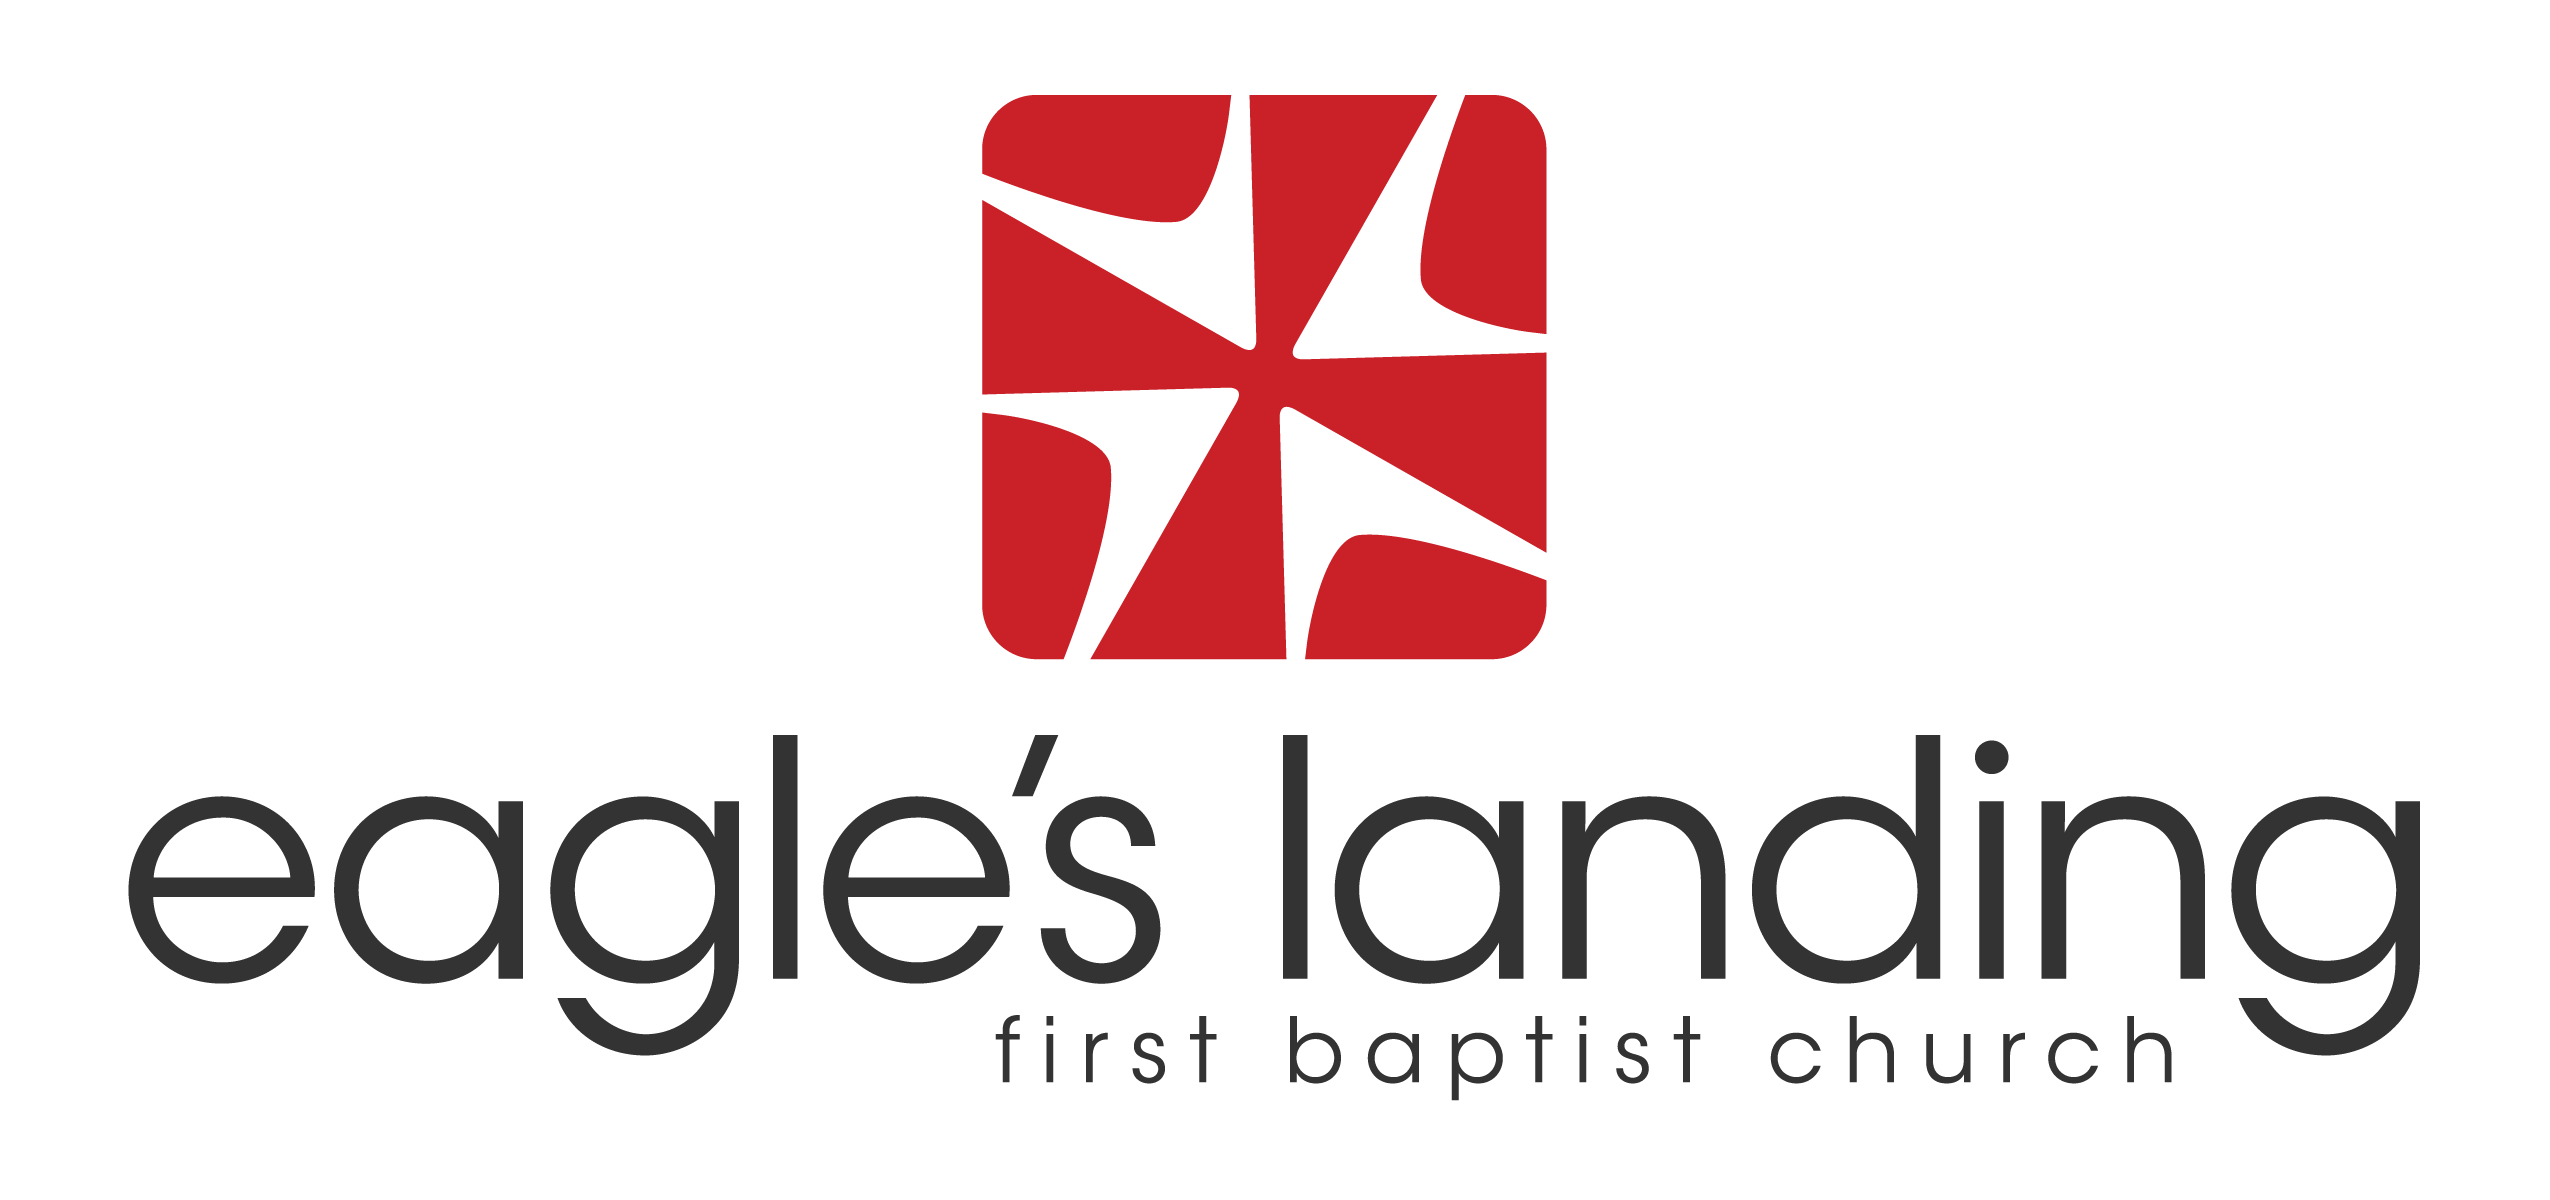 Church logos png. Eagles landing logo top